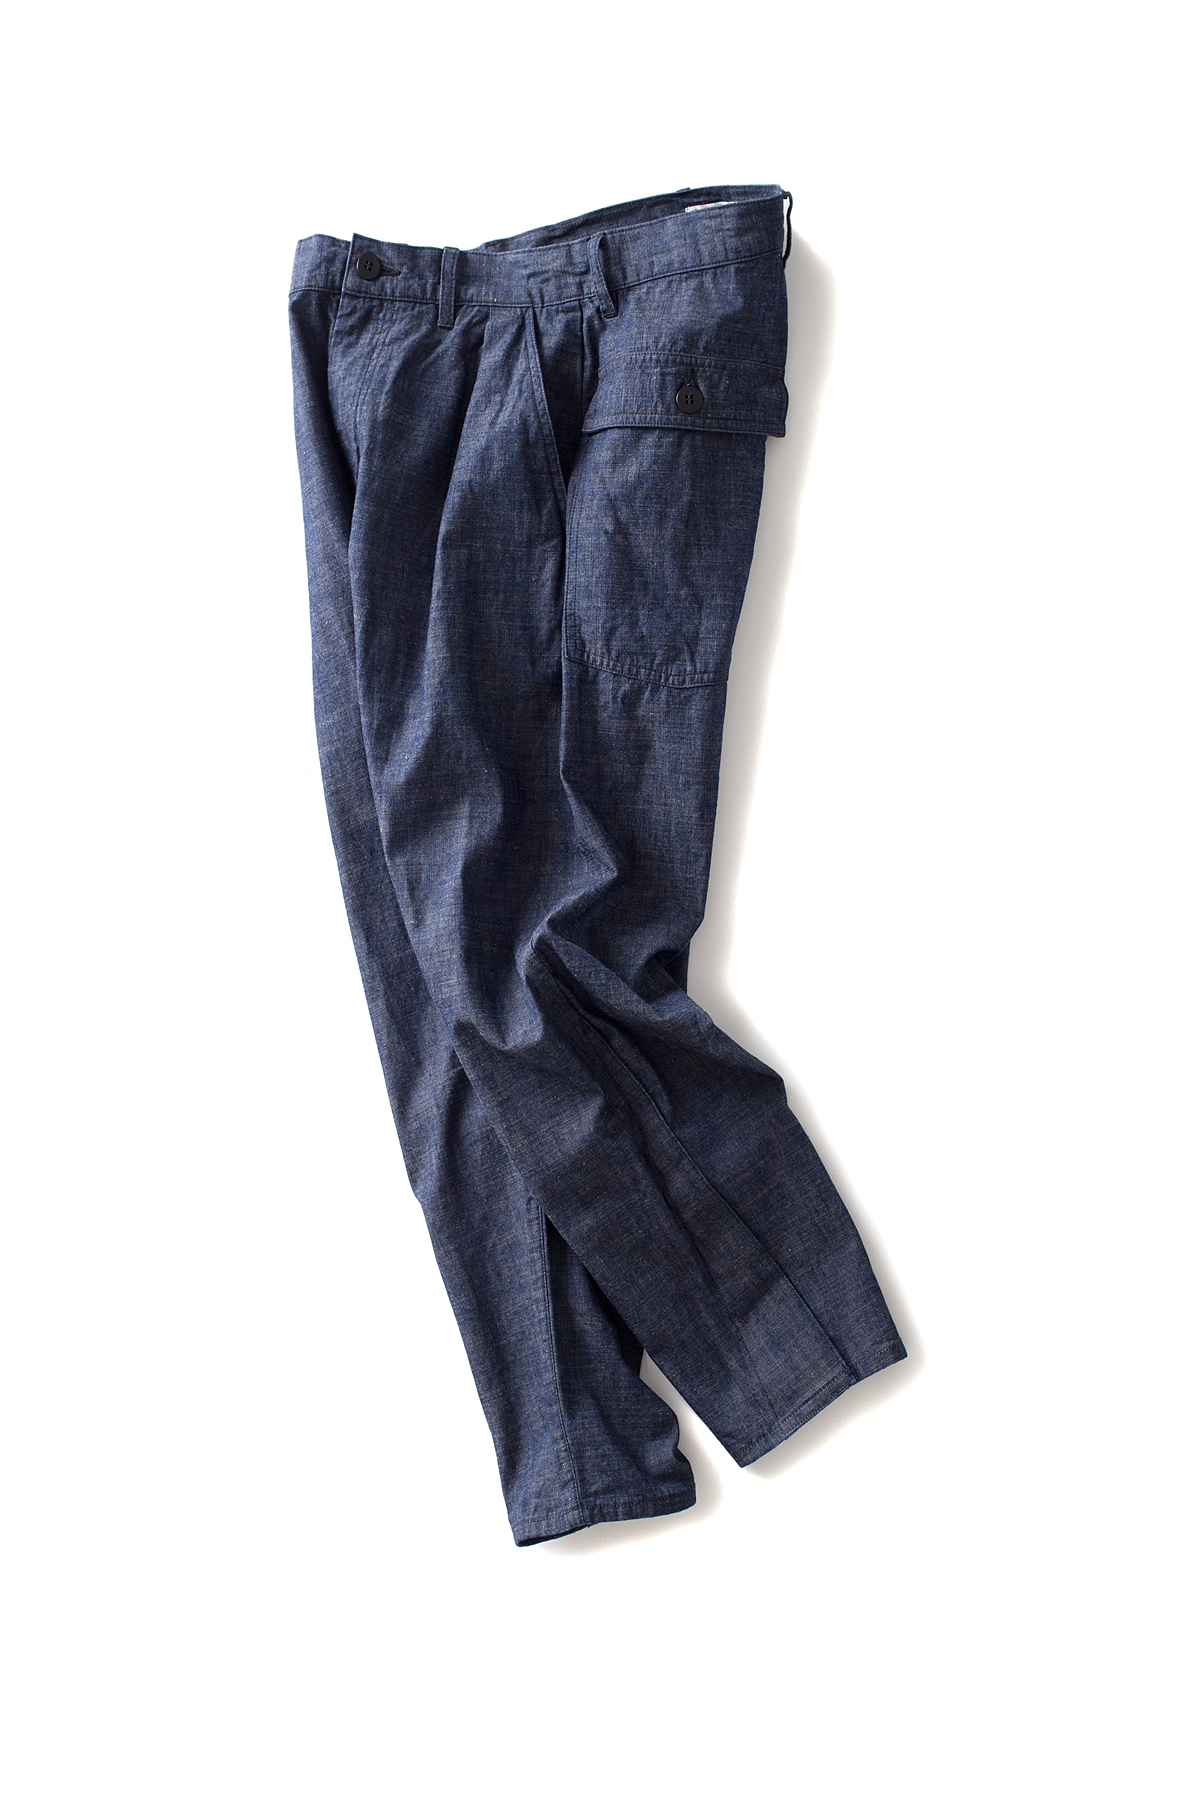 EEL : Cycle Pants (Indigo)